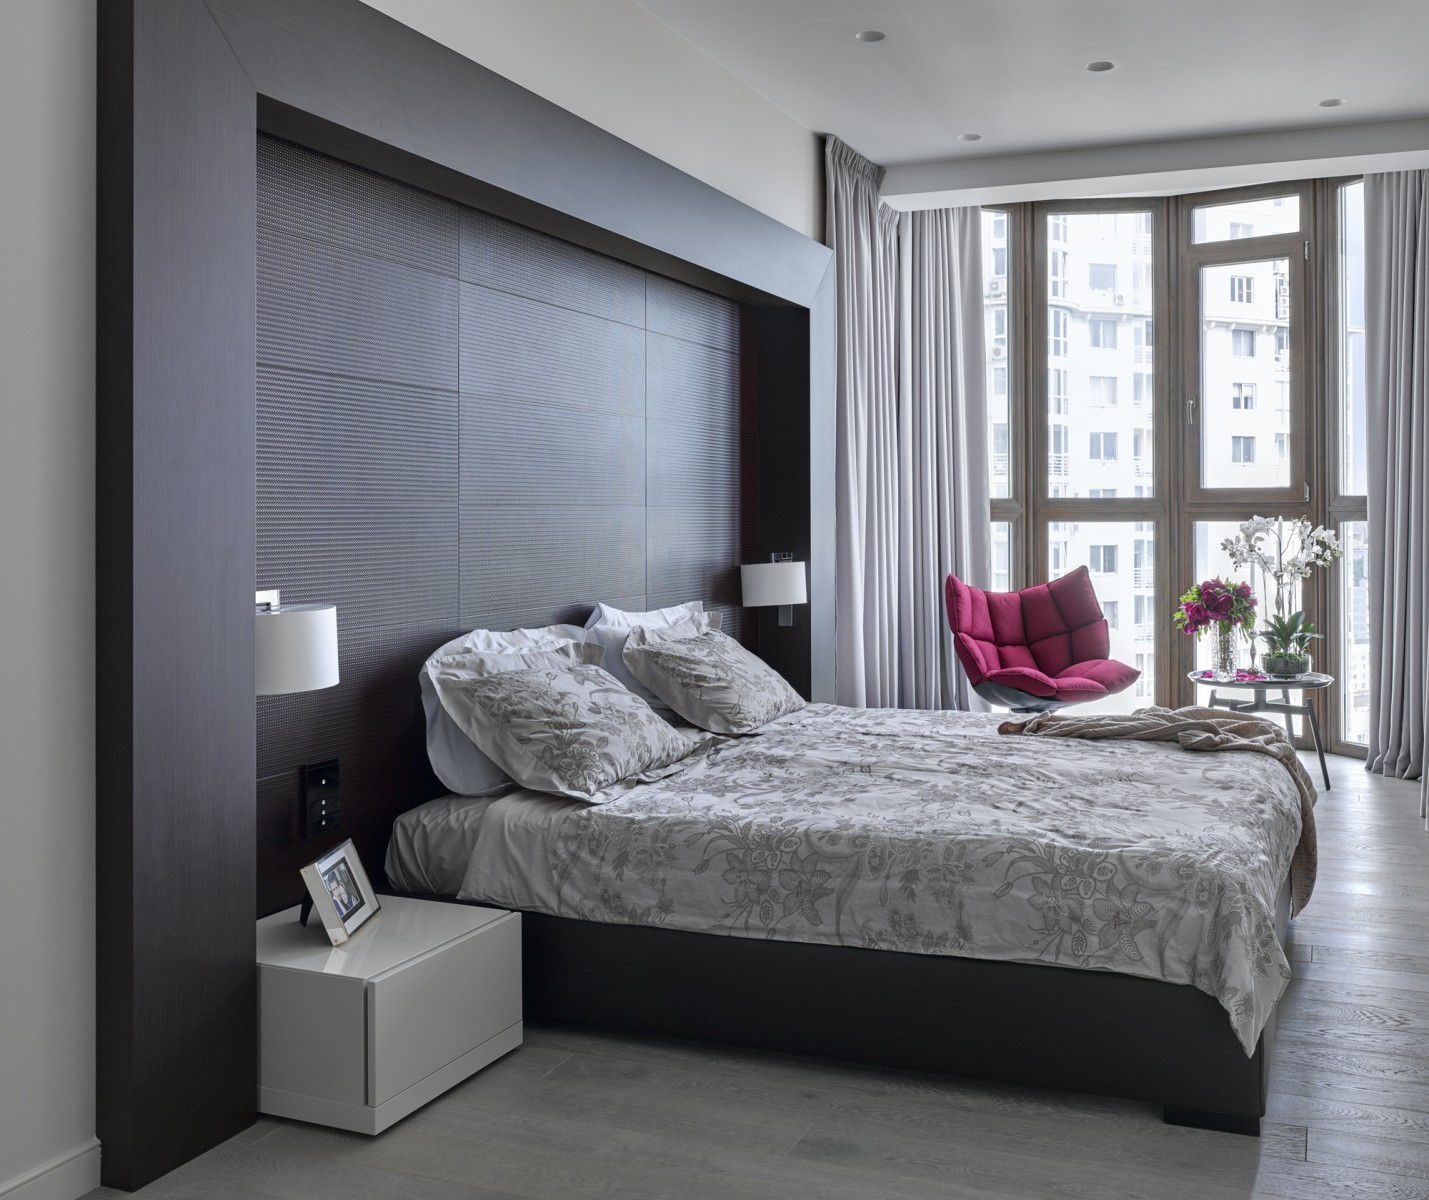 20 Small Bedroom Ideas That Will Leave You Speechless  Architecture Beast